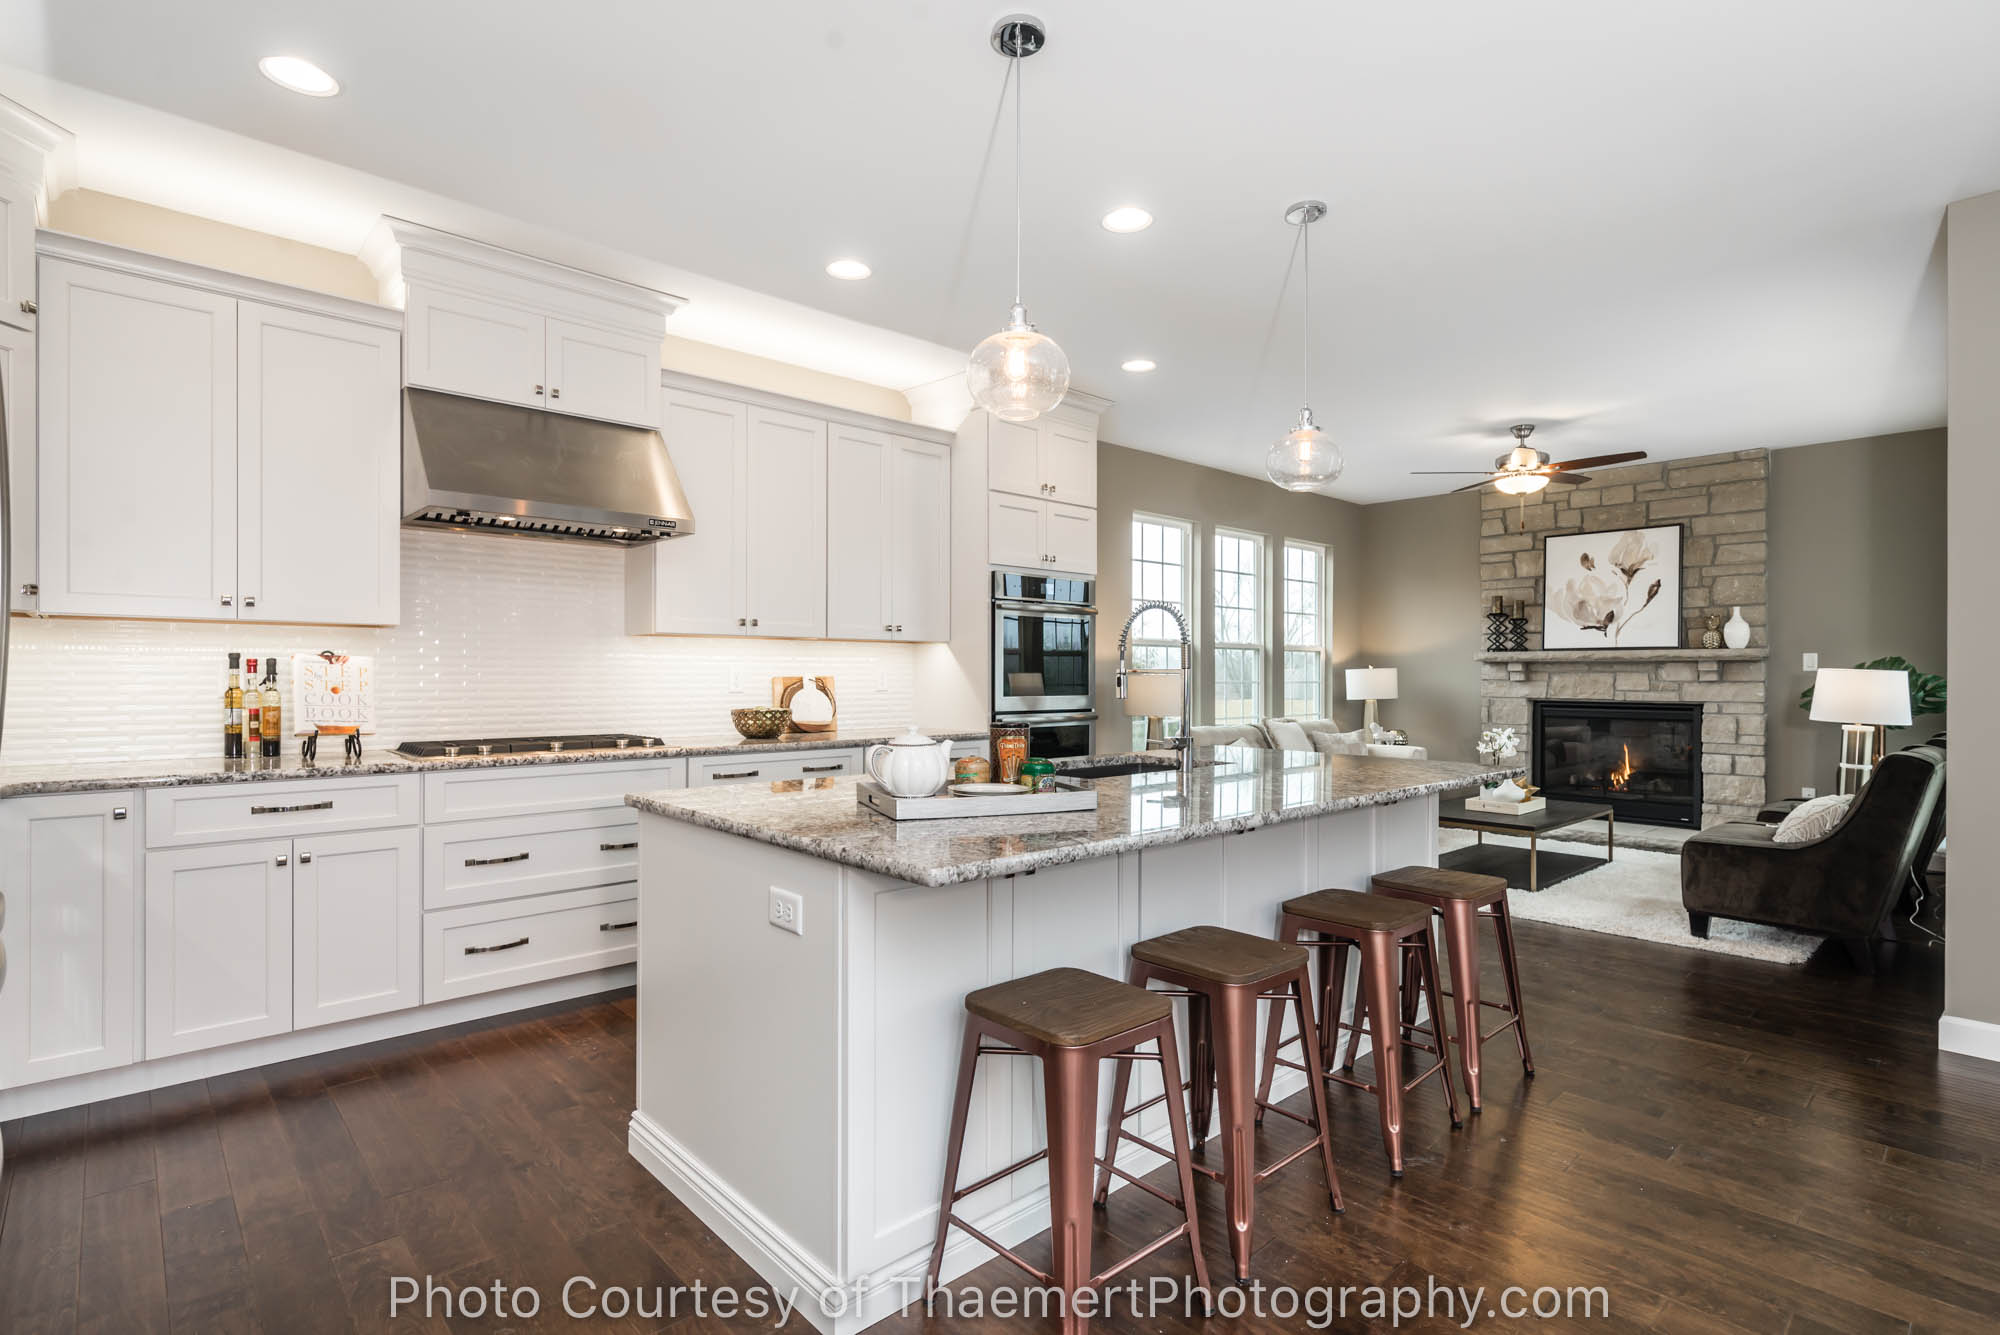 new kitchen sink grid gorgeous custom by st louis real estate photographer view larger image professional photo of a brand